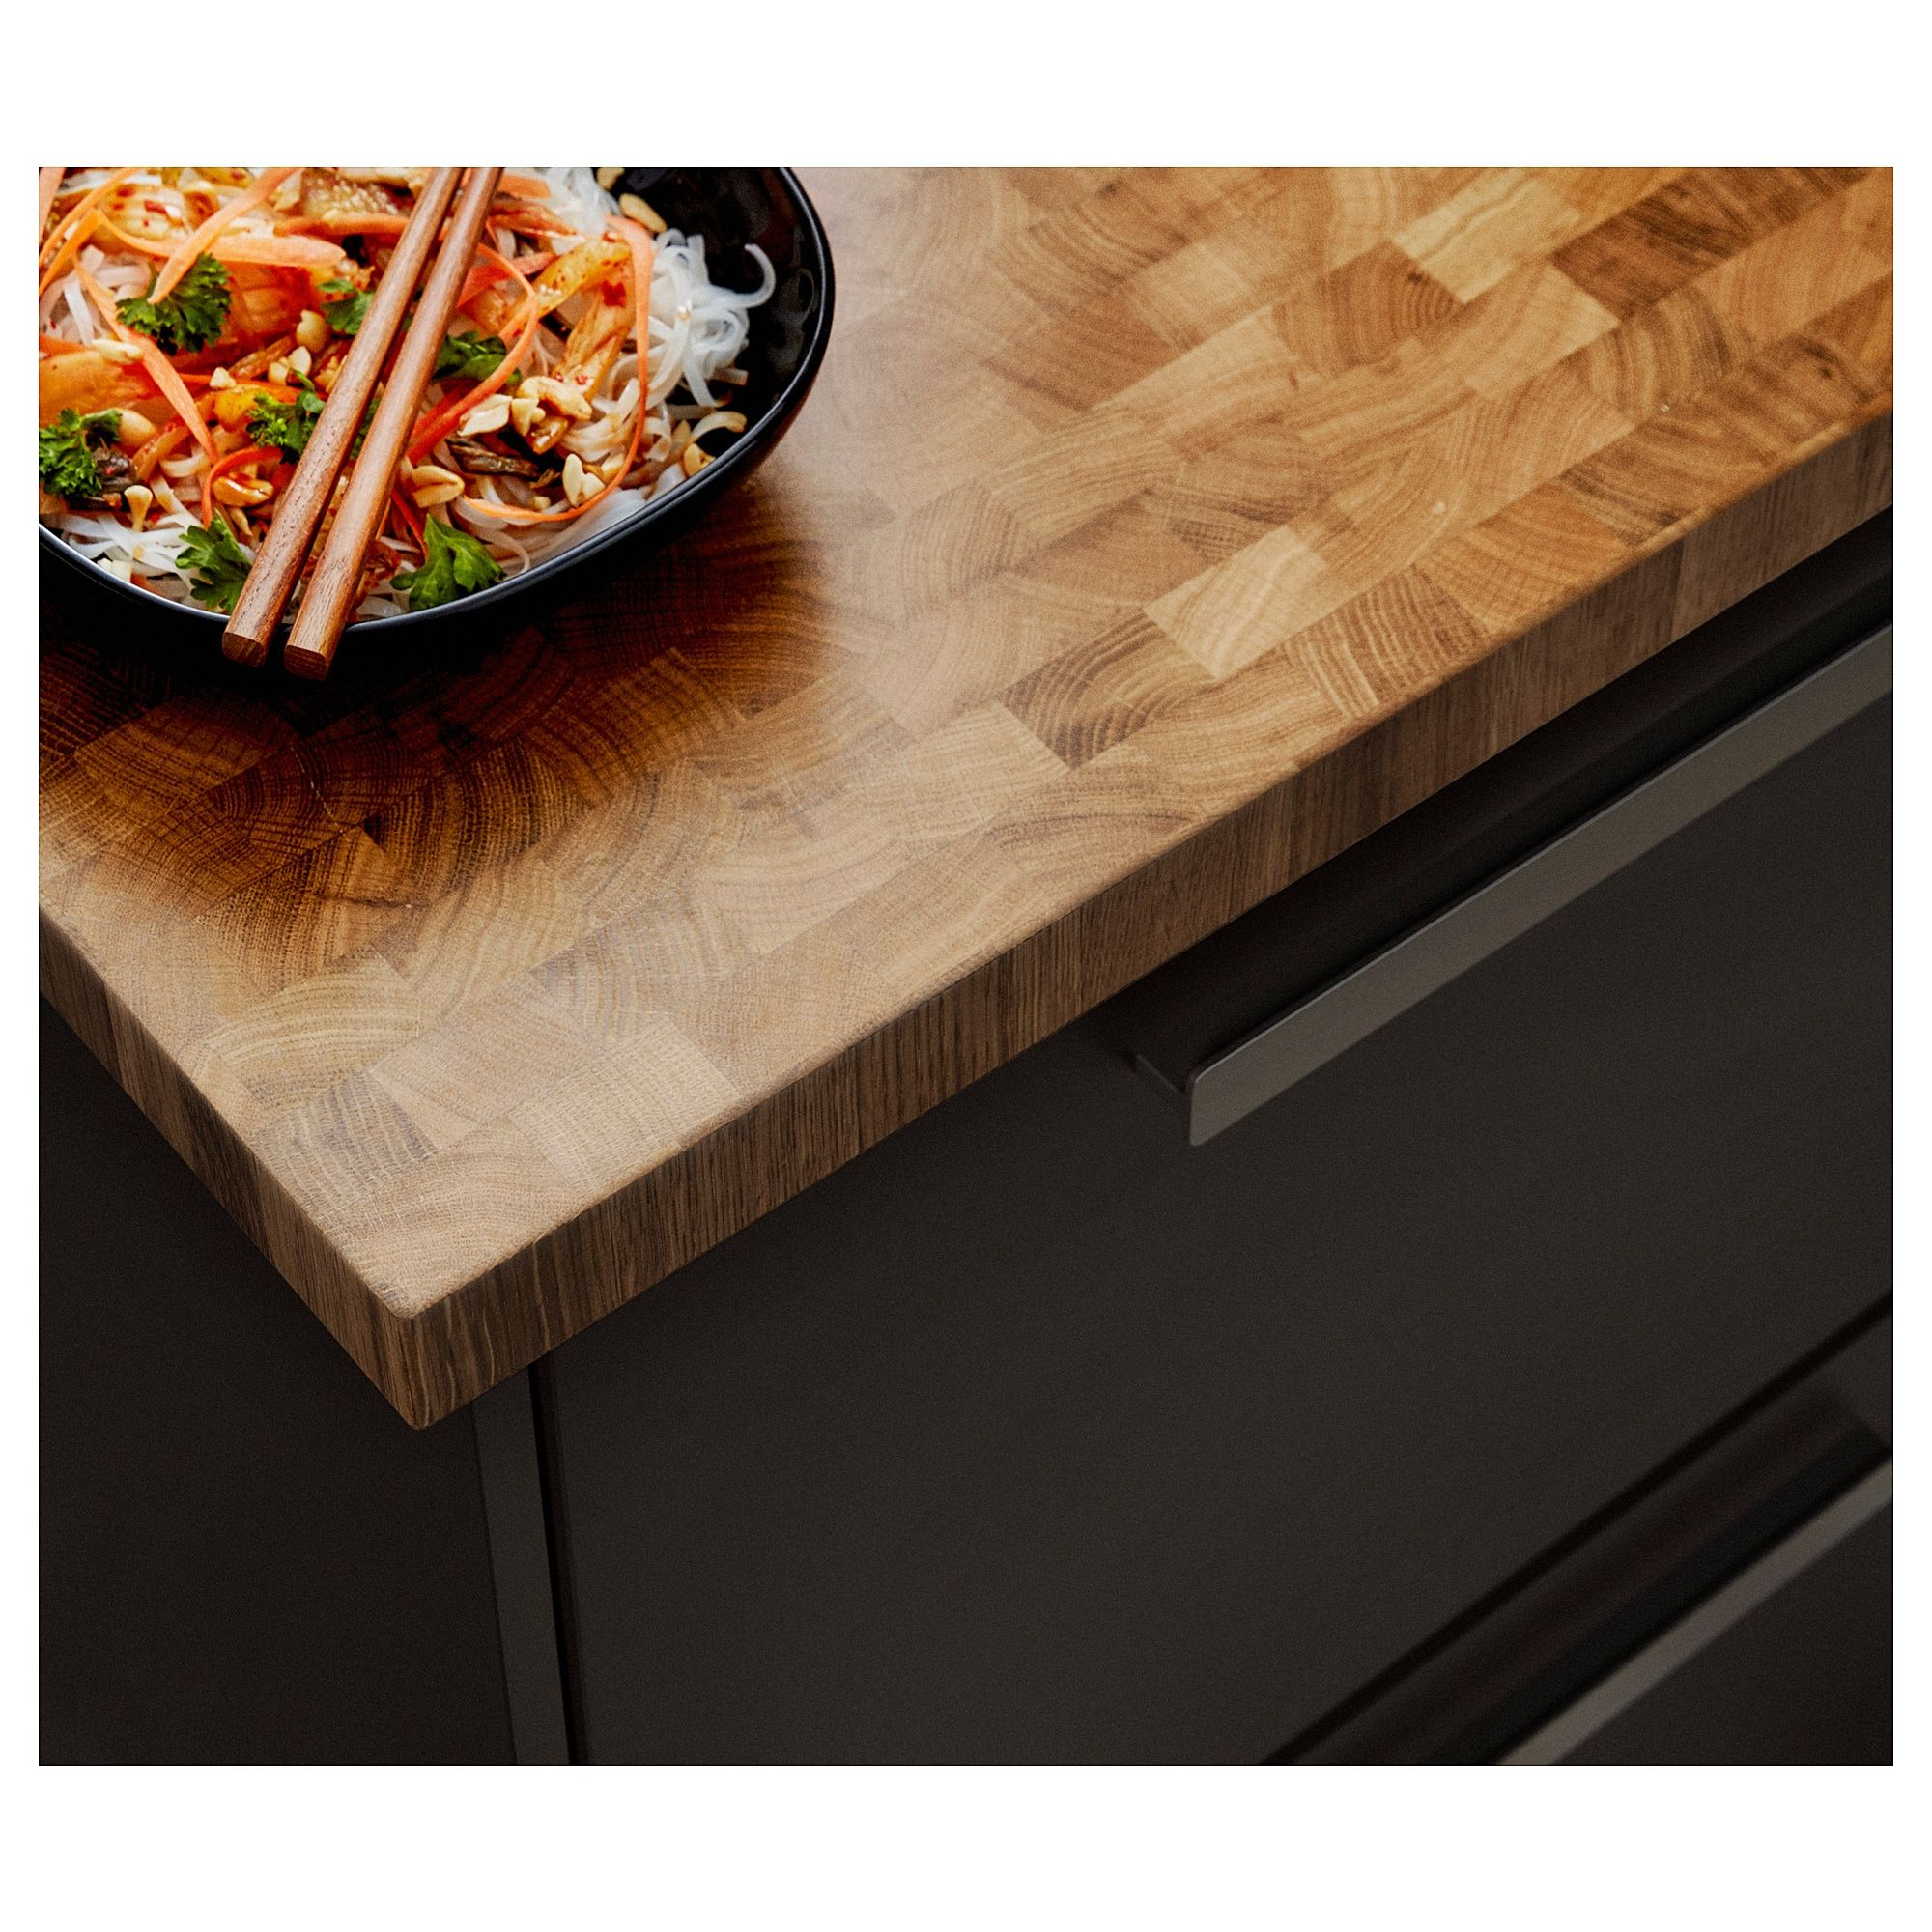 SkogsÅ Countertop Oak Veneer Ikea Countertops Wood Worktop Wood Countertops